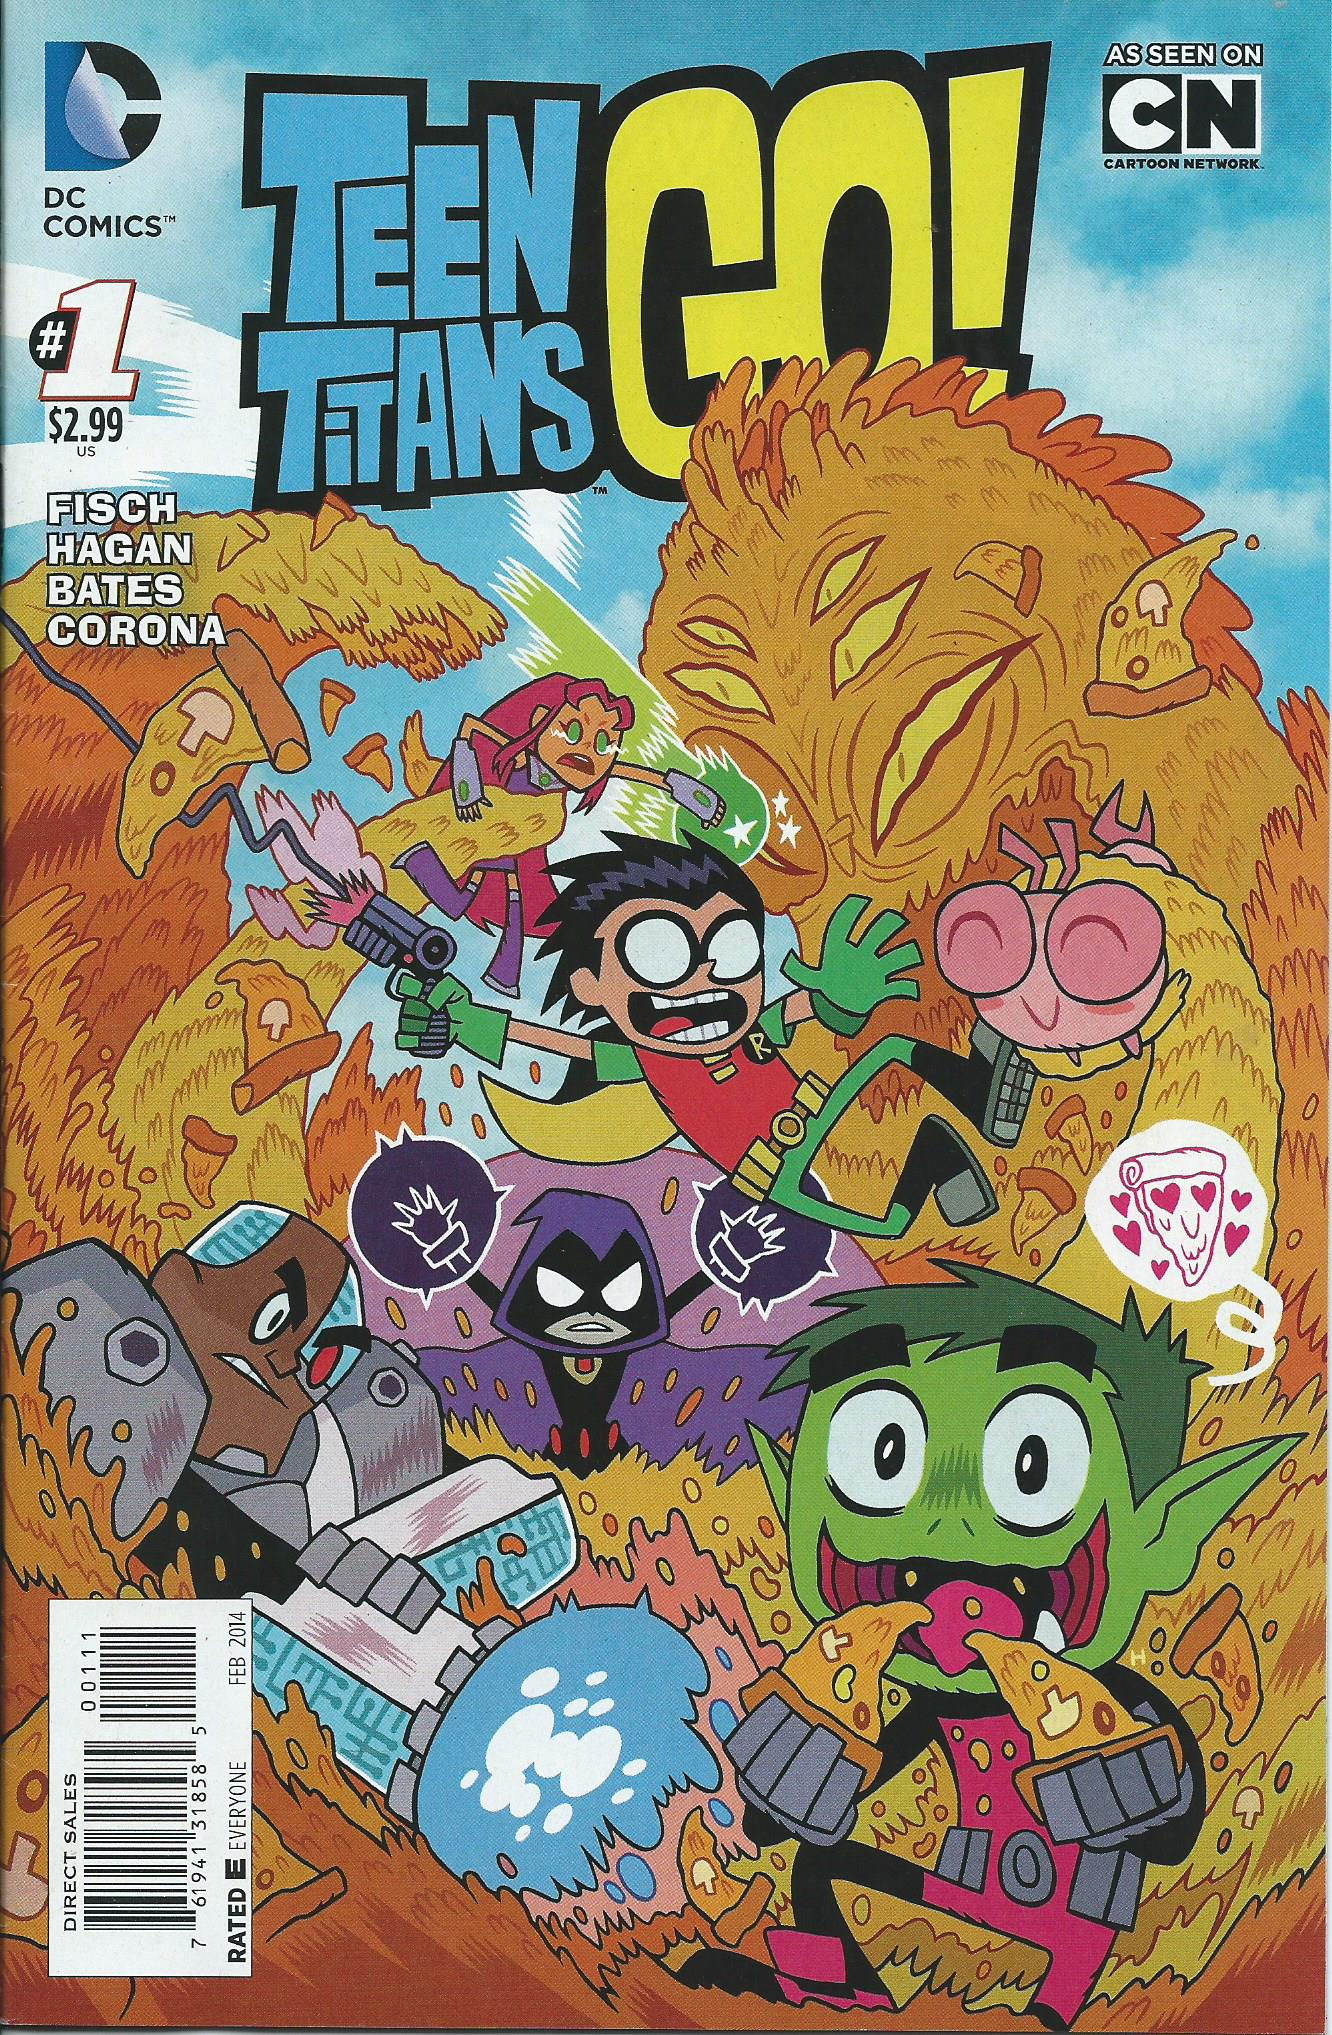 Teen Titans Go 1 And 2 Review  Comics To Read-9693